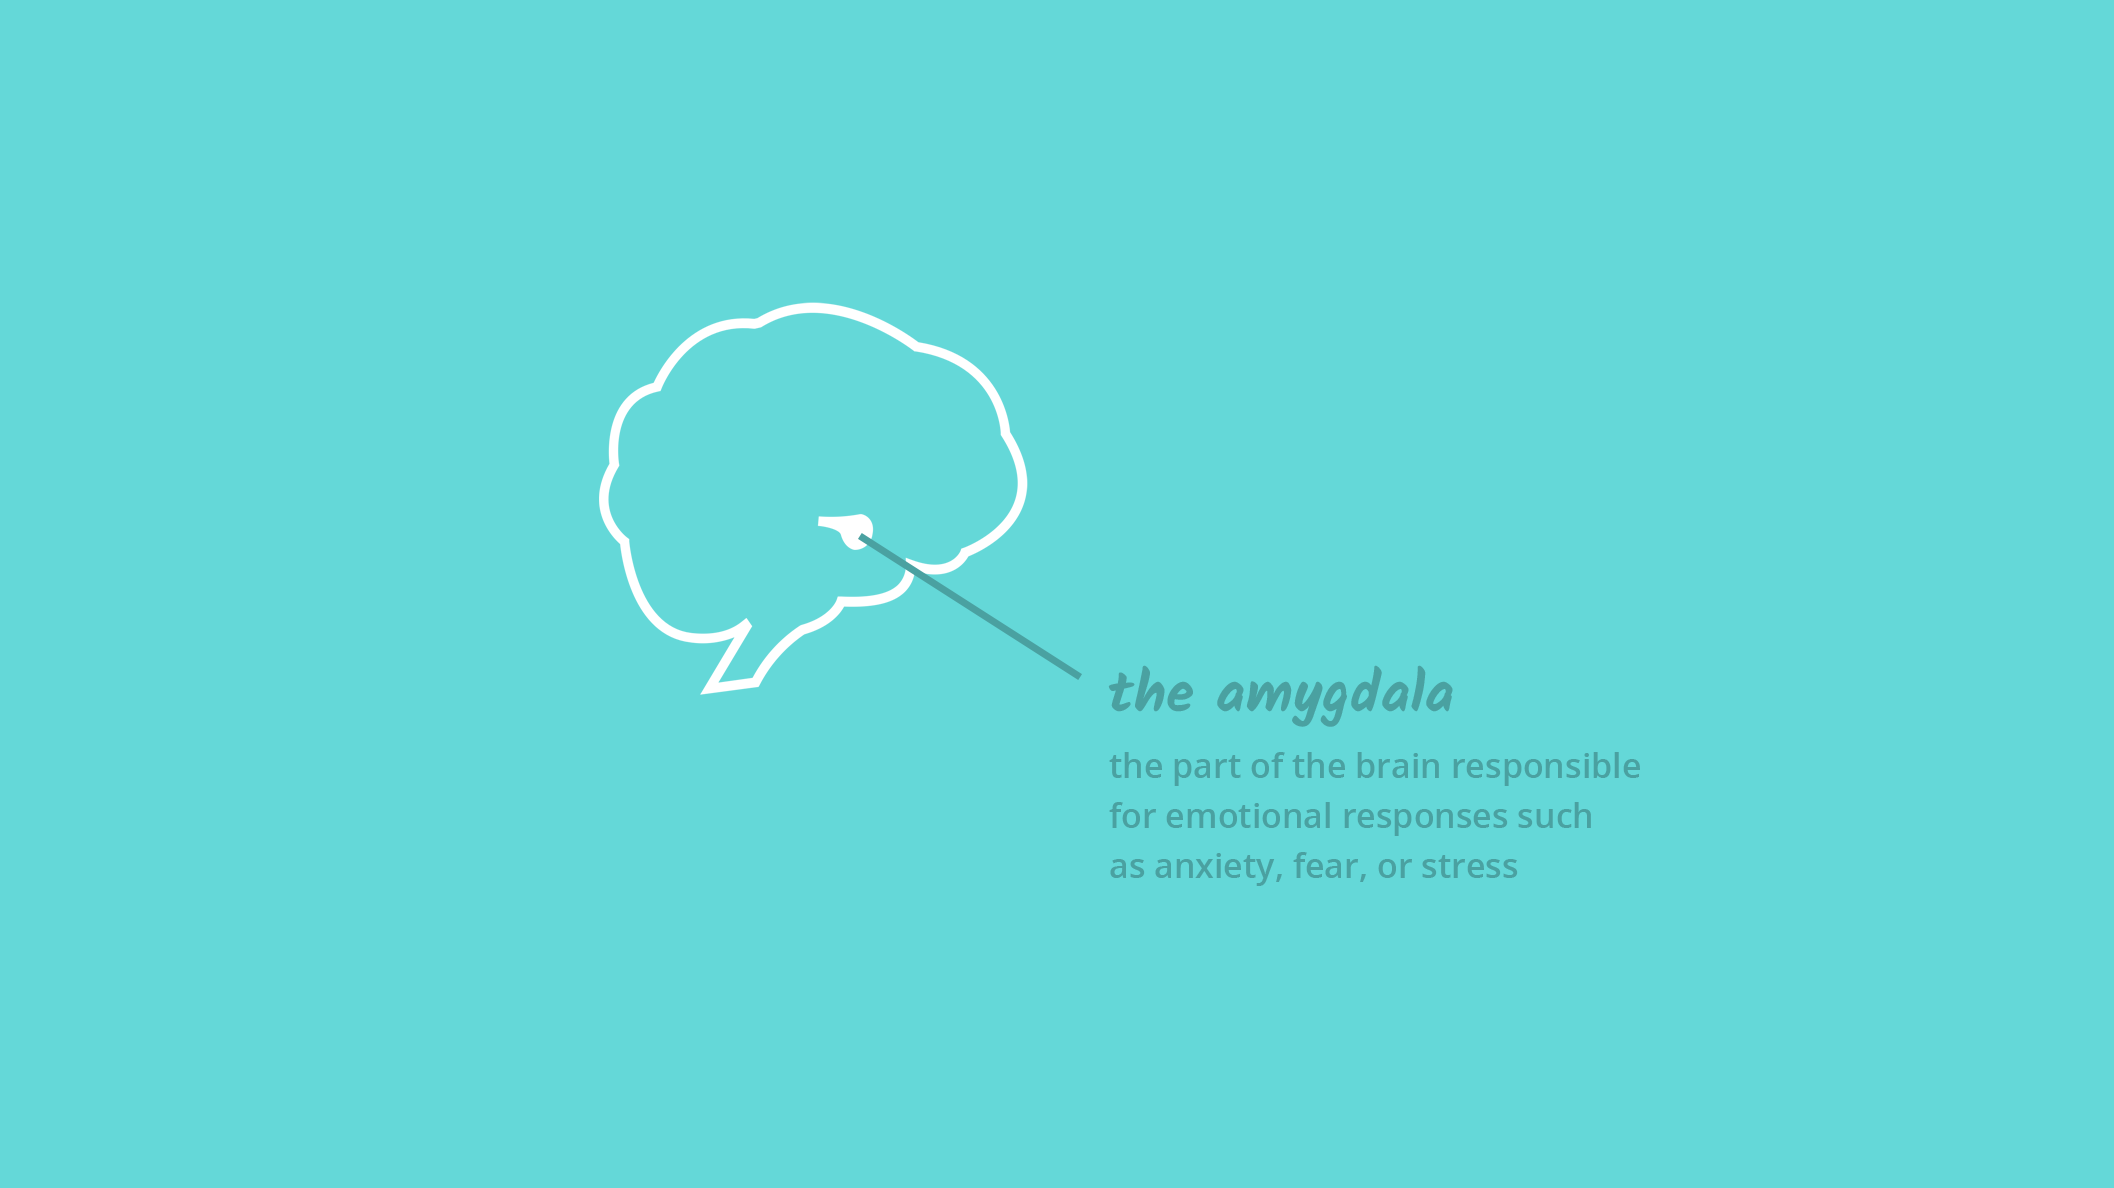 Amgydala, the part of the brain that is responsible for our emotional responses such as fear, anxiety, and stress